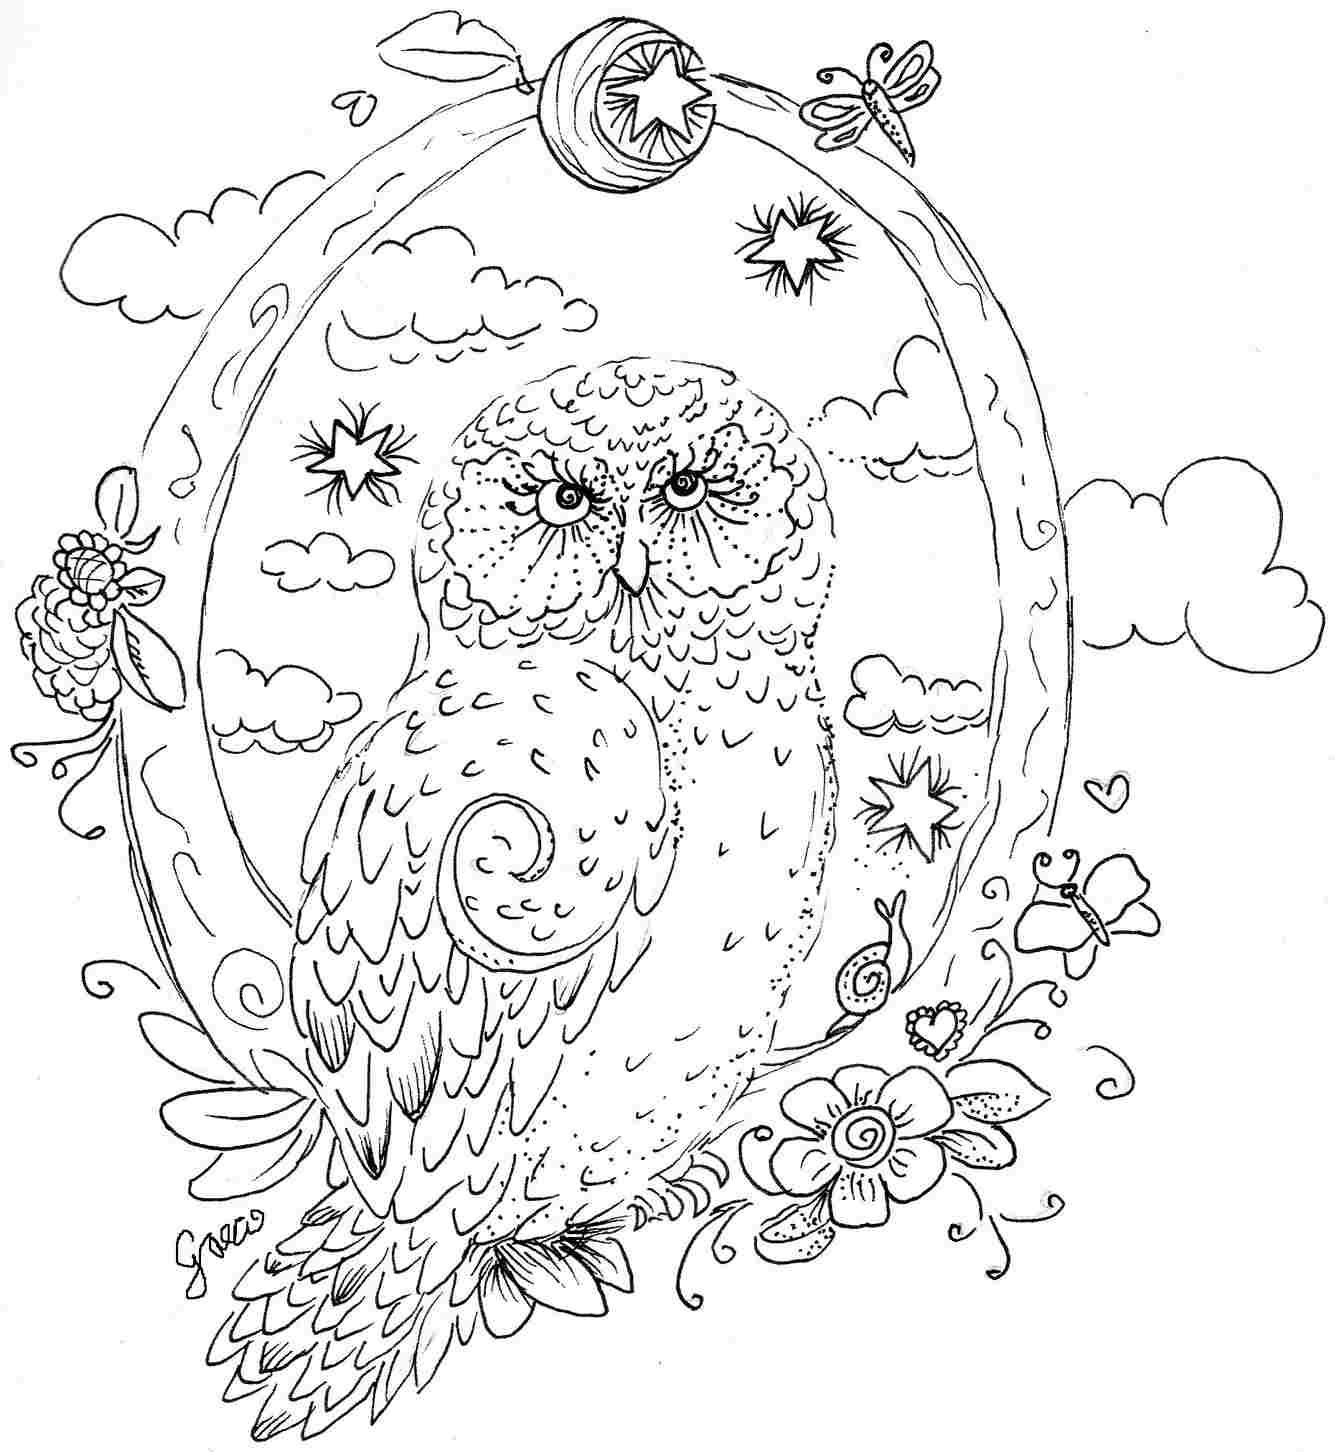 mythical creatures coloring pages to print | Mythical creatures coloring pages | Coloring pages ...